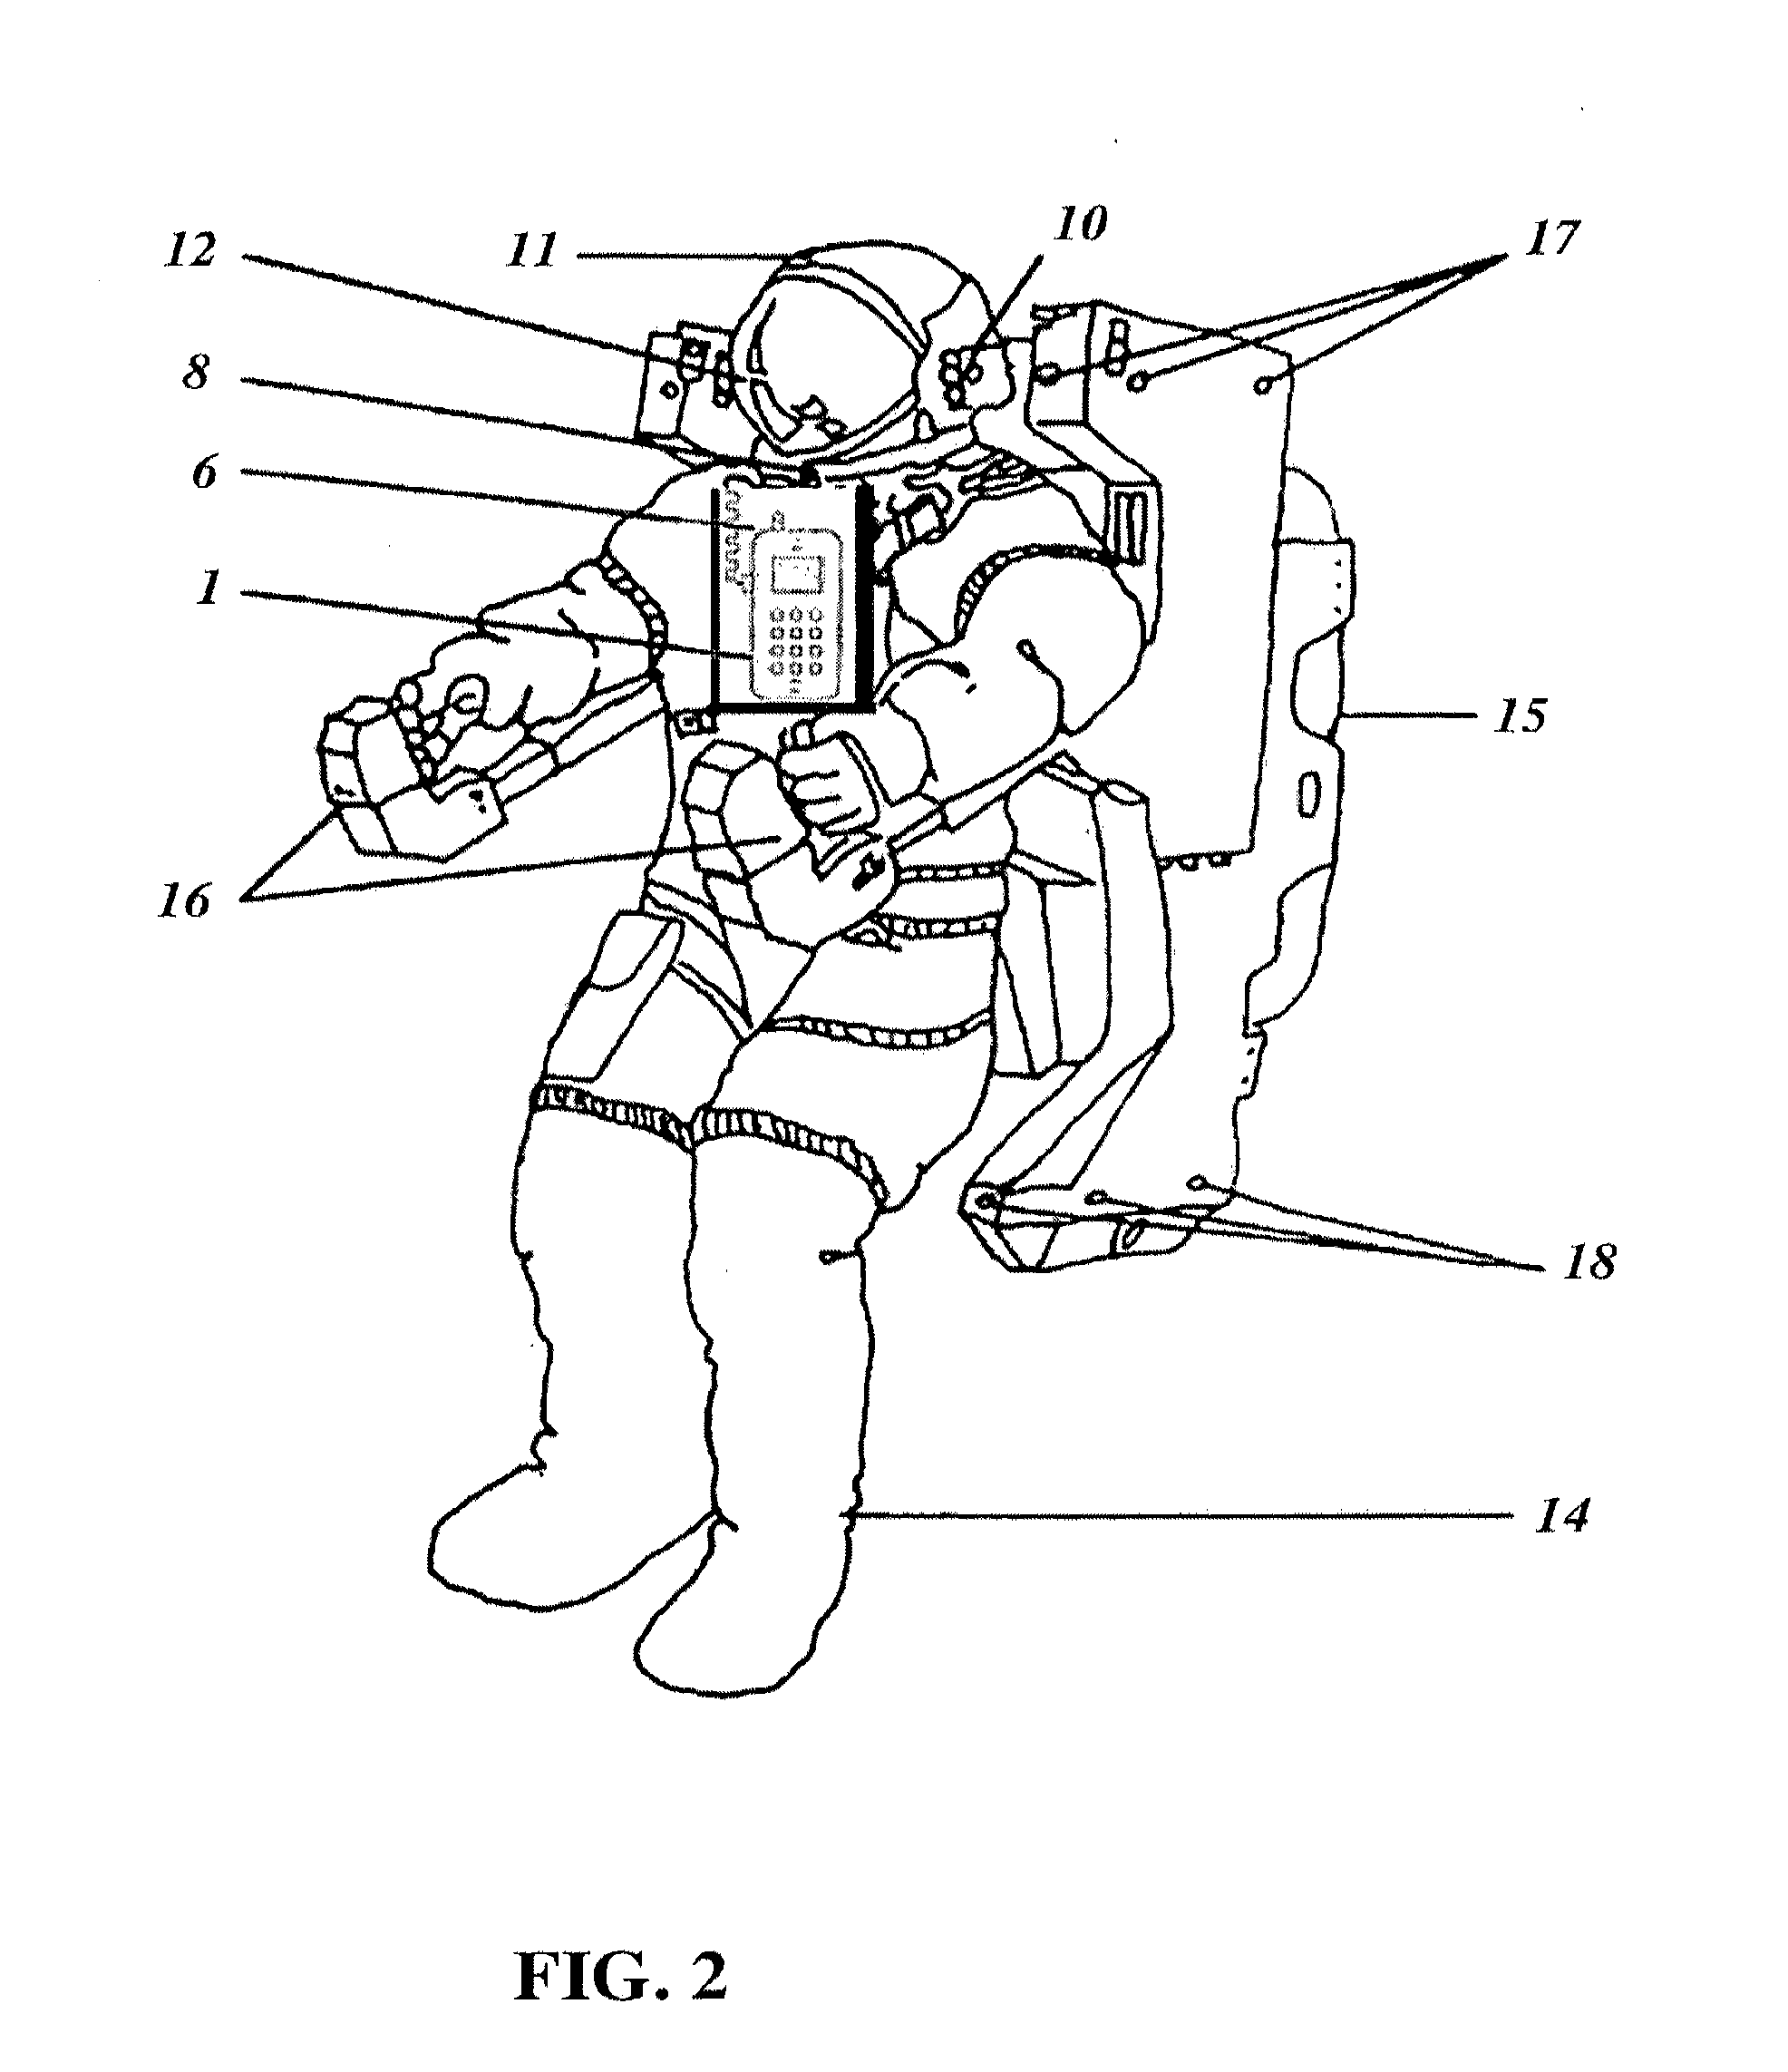 Astronauts Suit Backpack Diagram Page 2